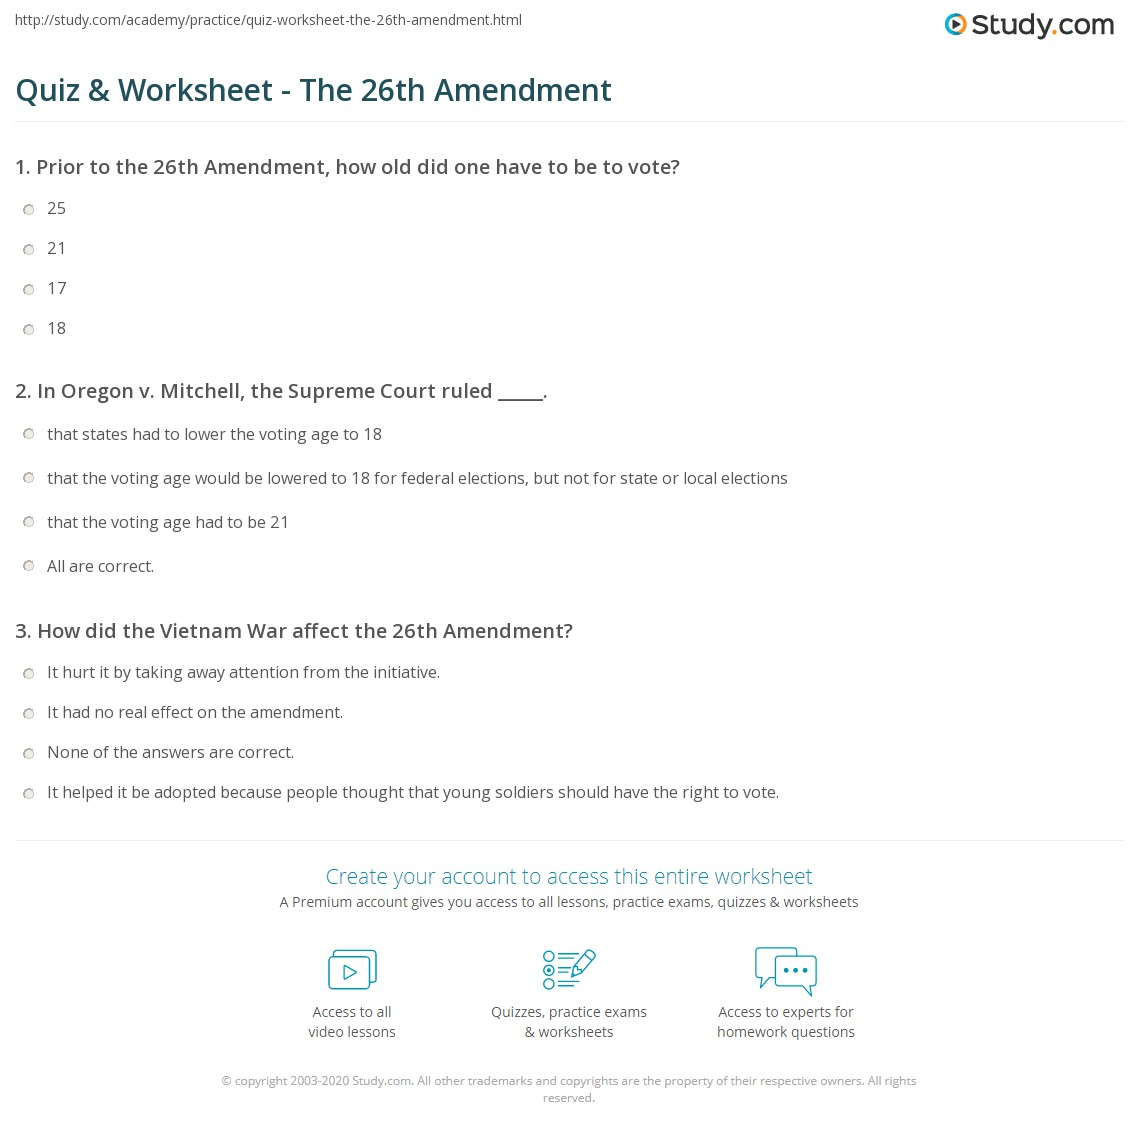 worksheet Amendments Worksheet quiz worksheet the 26th amendment study com print definition history facts court cases worksheet